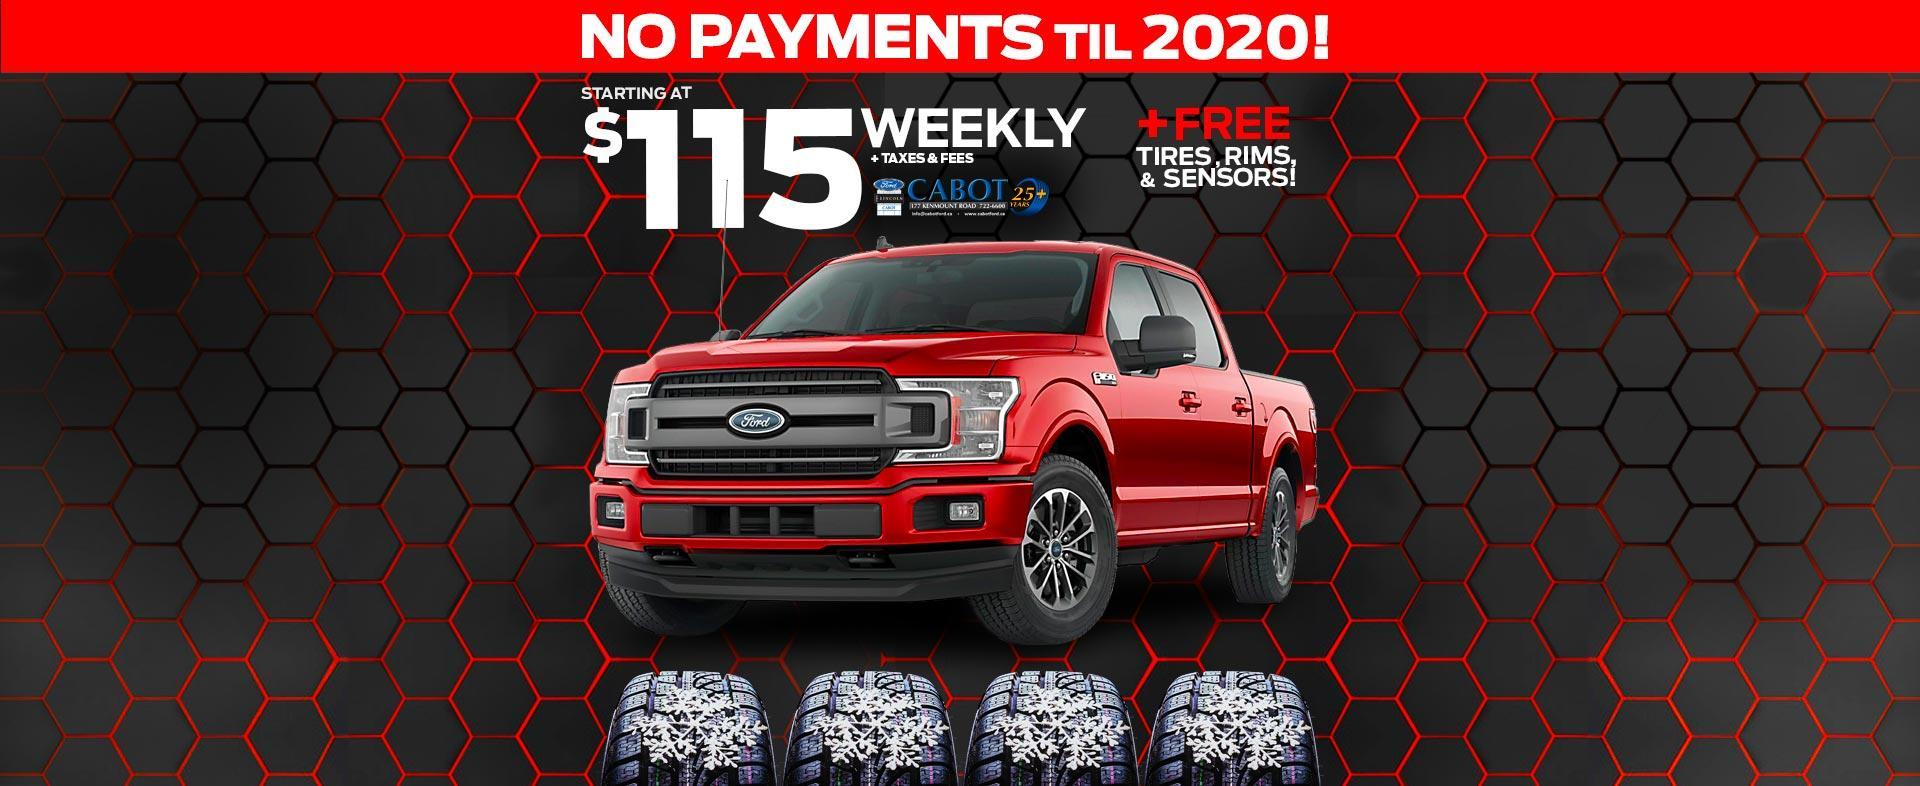 2019 F-150 XLT CrewCabs starting at just $115 weekly + taxes & fees.  NO PAYMENTS TIL 2020!  Free winter tires, rims, & sensors!